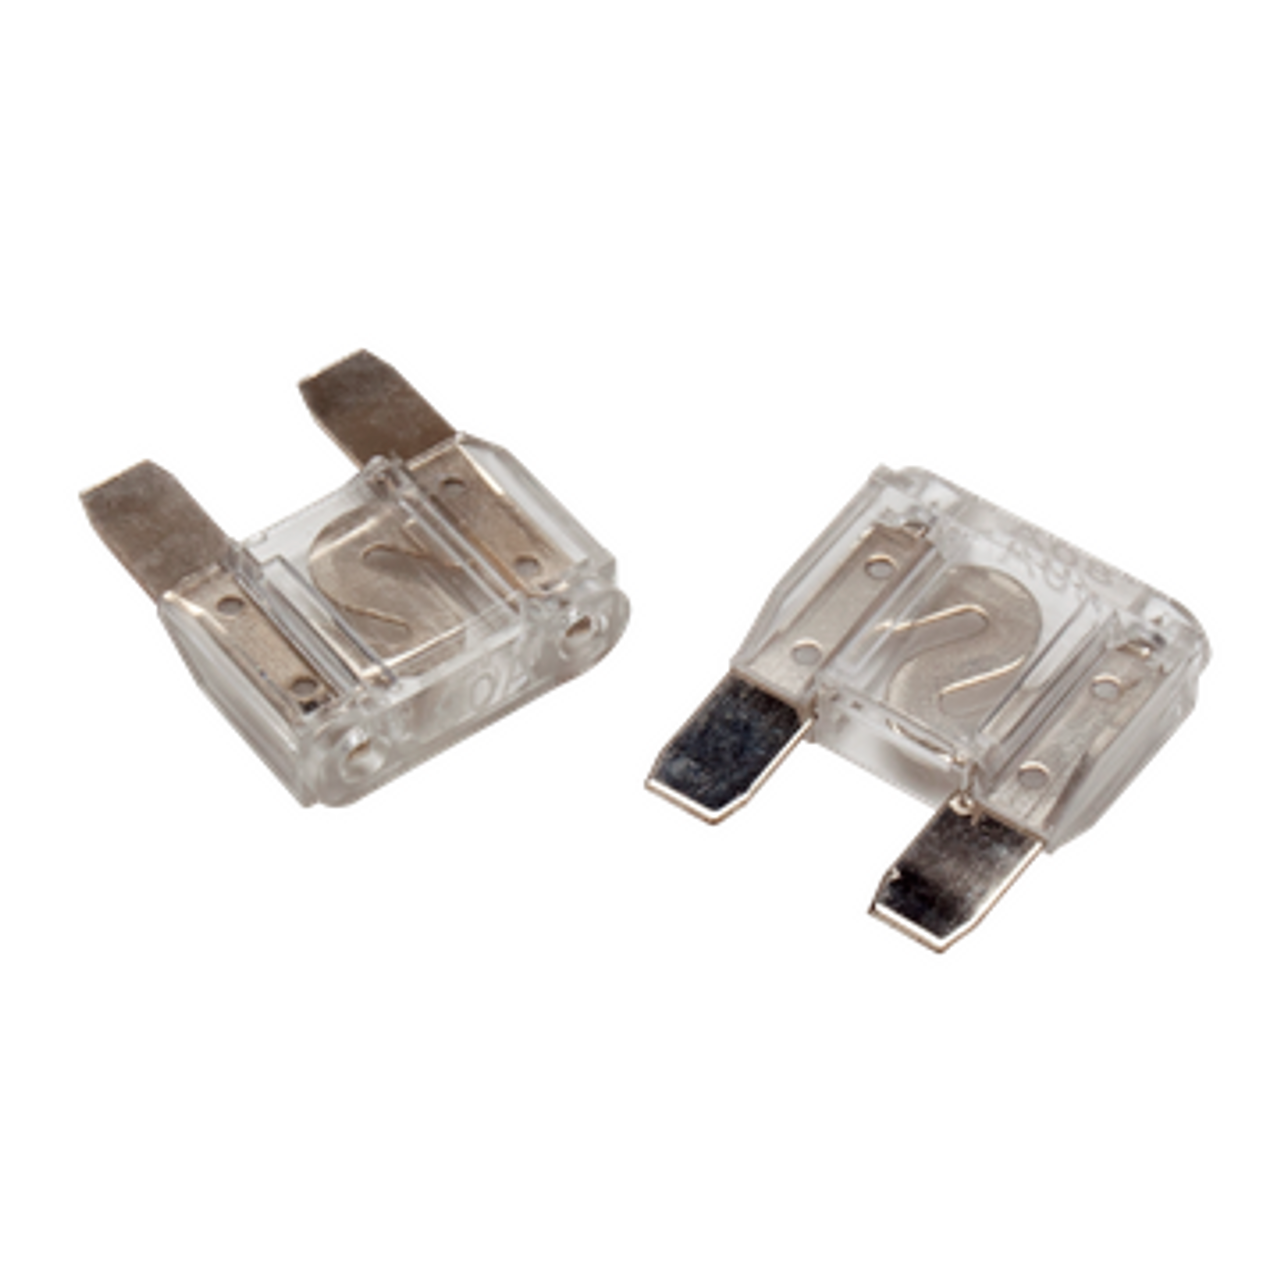 10 PACK 80 AMP ANL FUSE FUSES GOLD PLATED INLINE WAFER HIGH QUALITY HOLDER